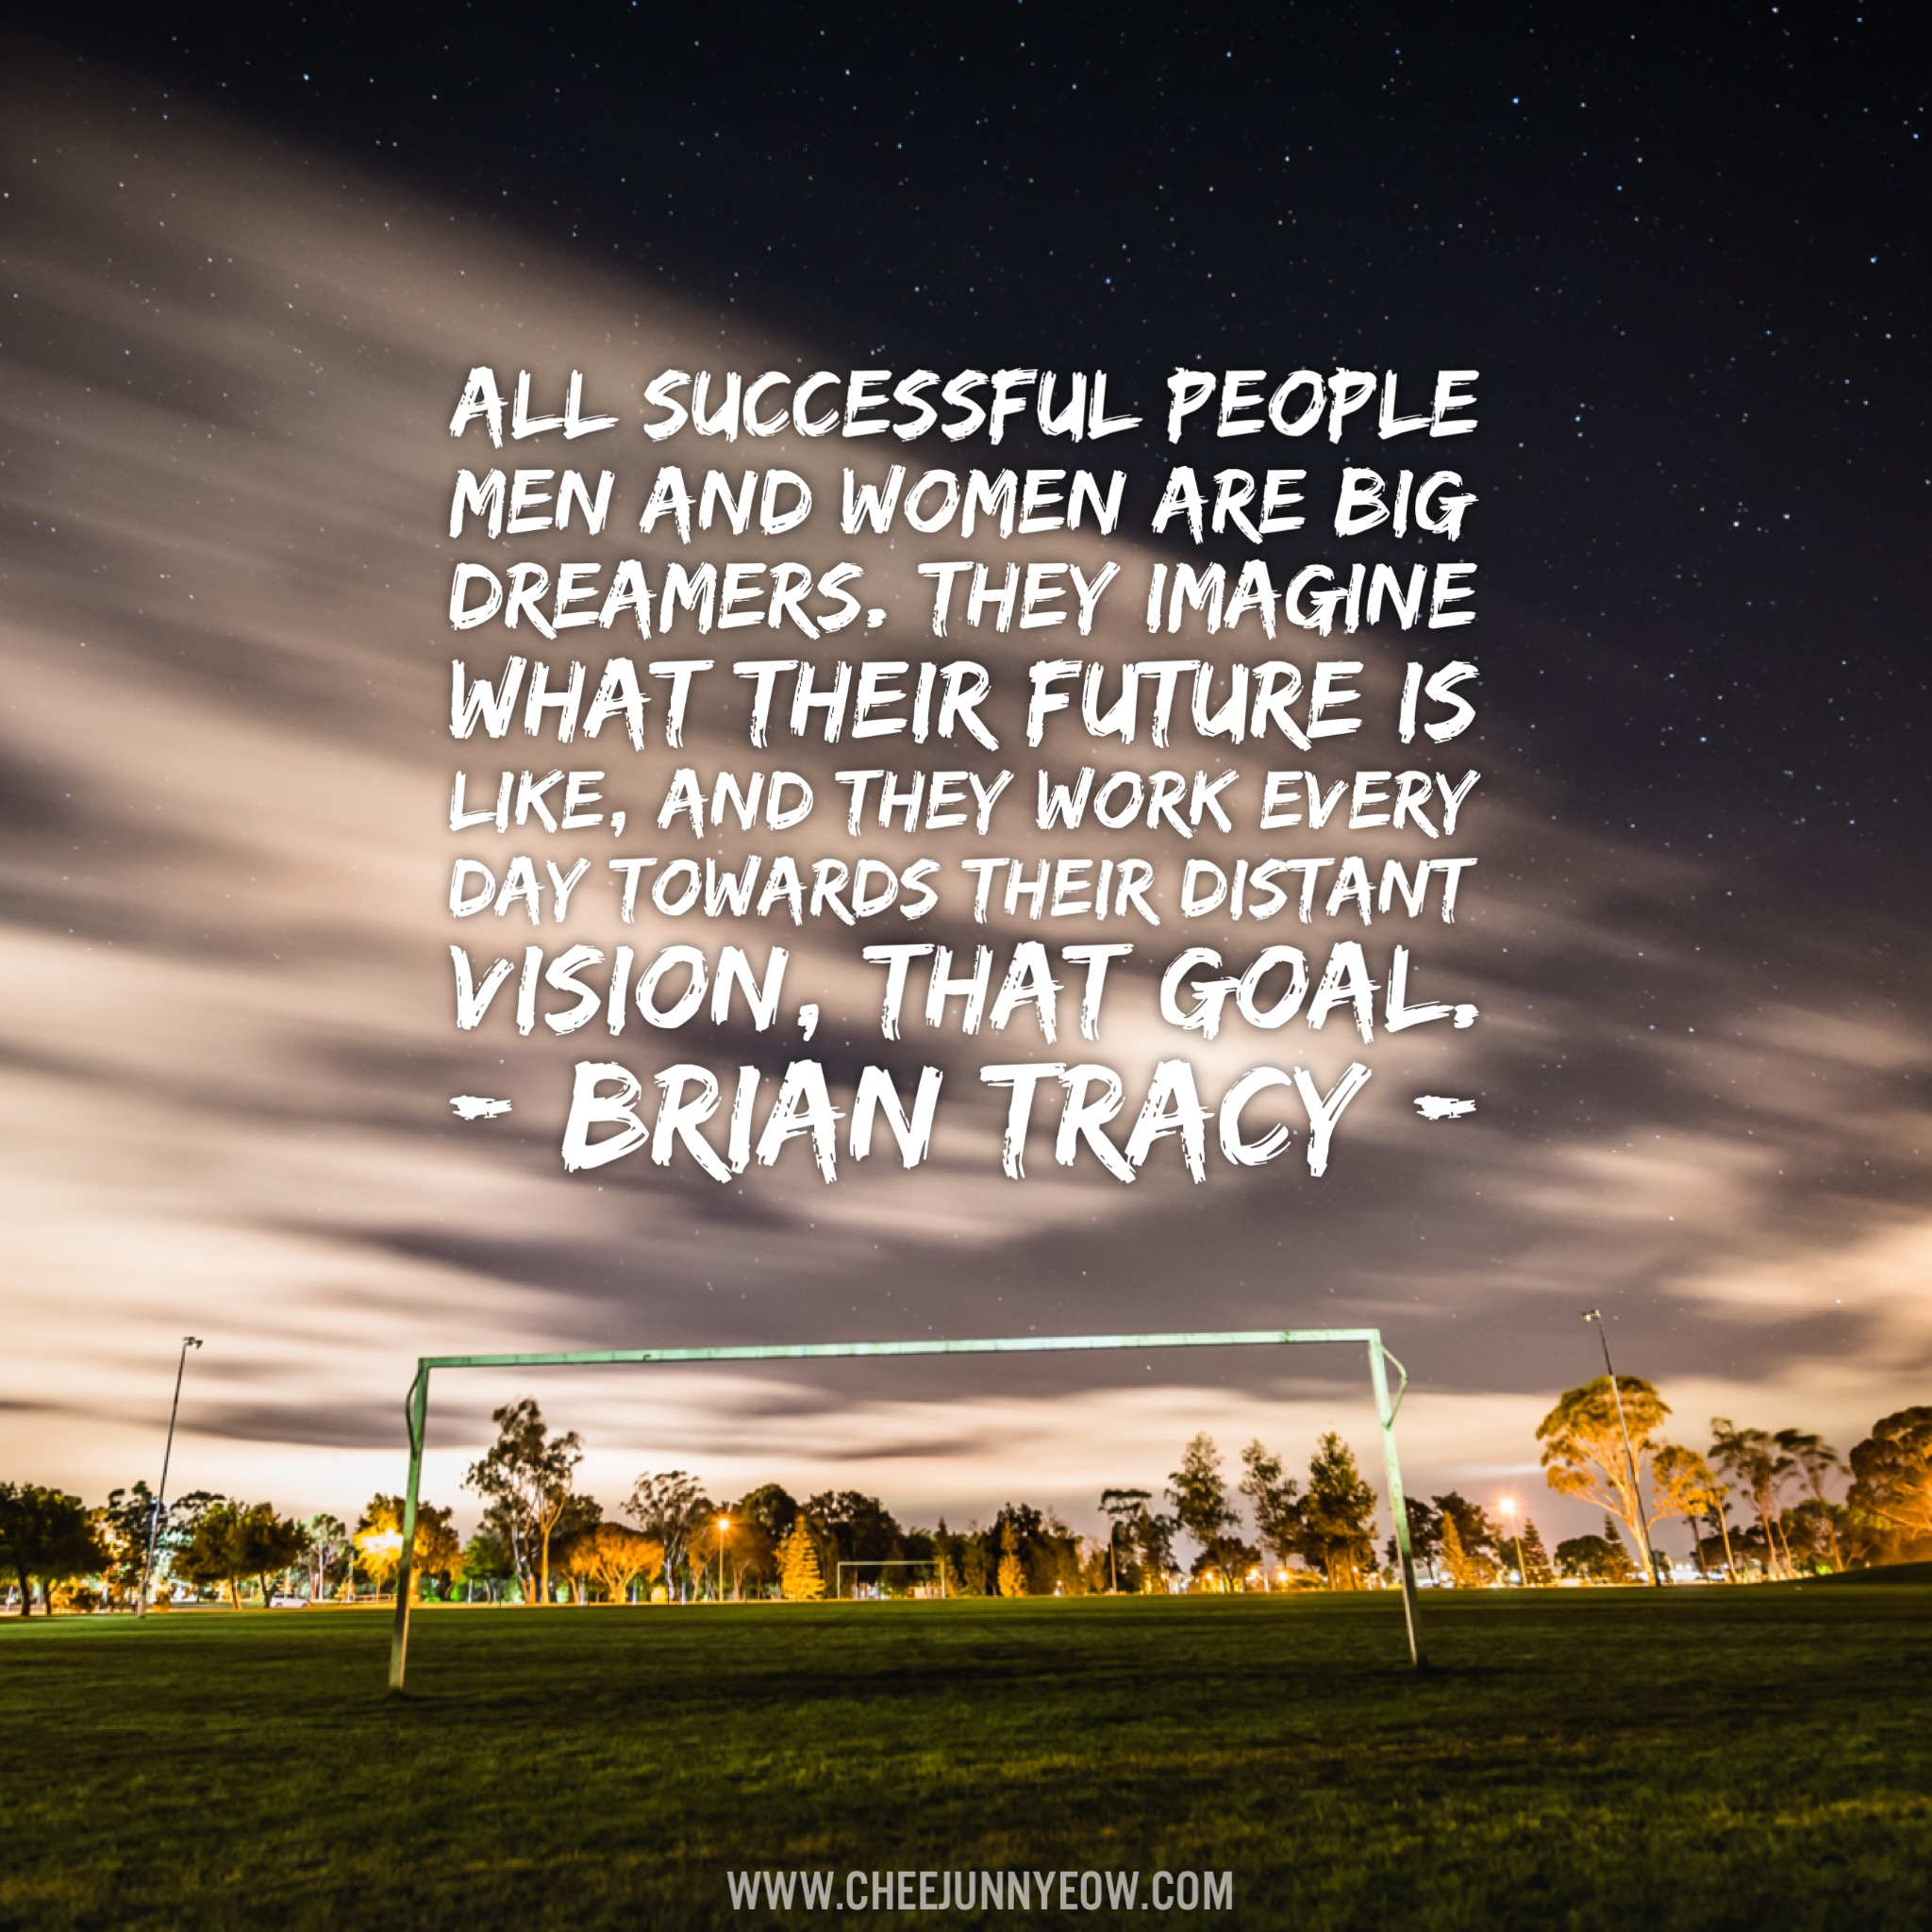 all succesful people, men & women are big dreamers. they imagine what their future is like and they work every day towards their distant vision. that goal